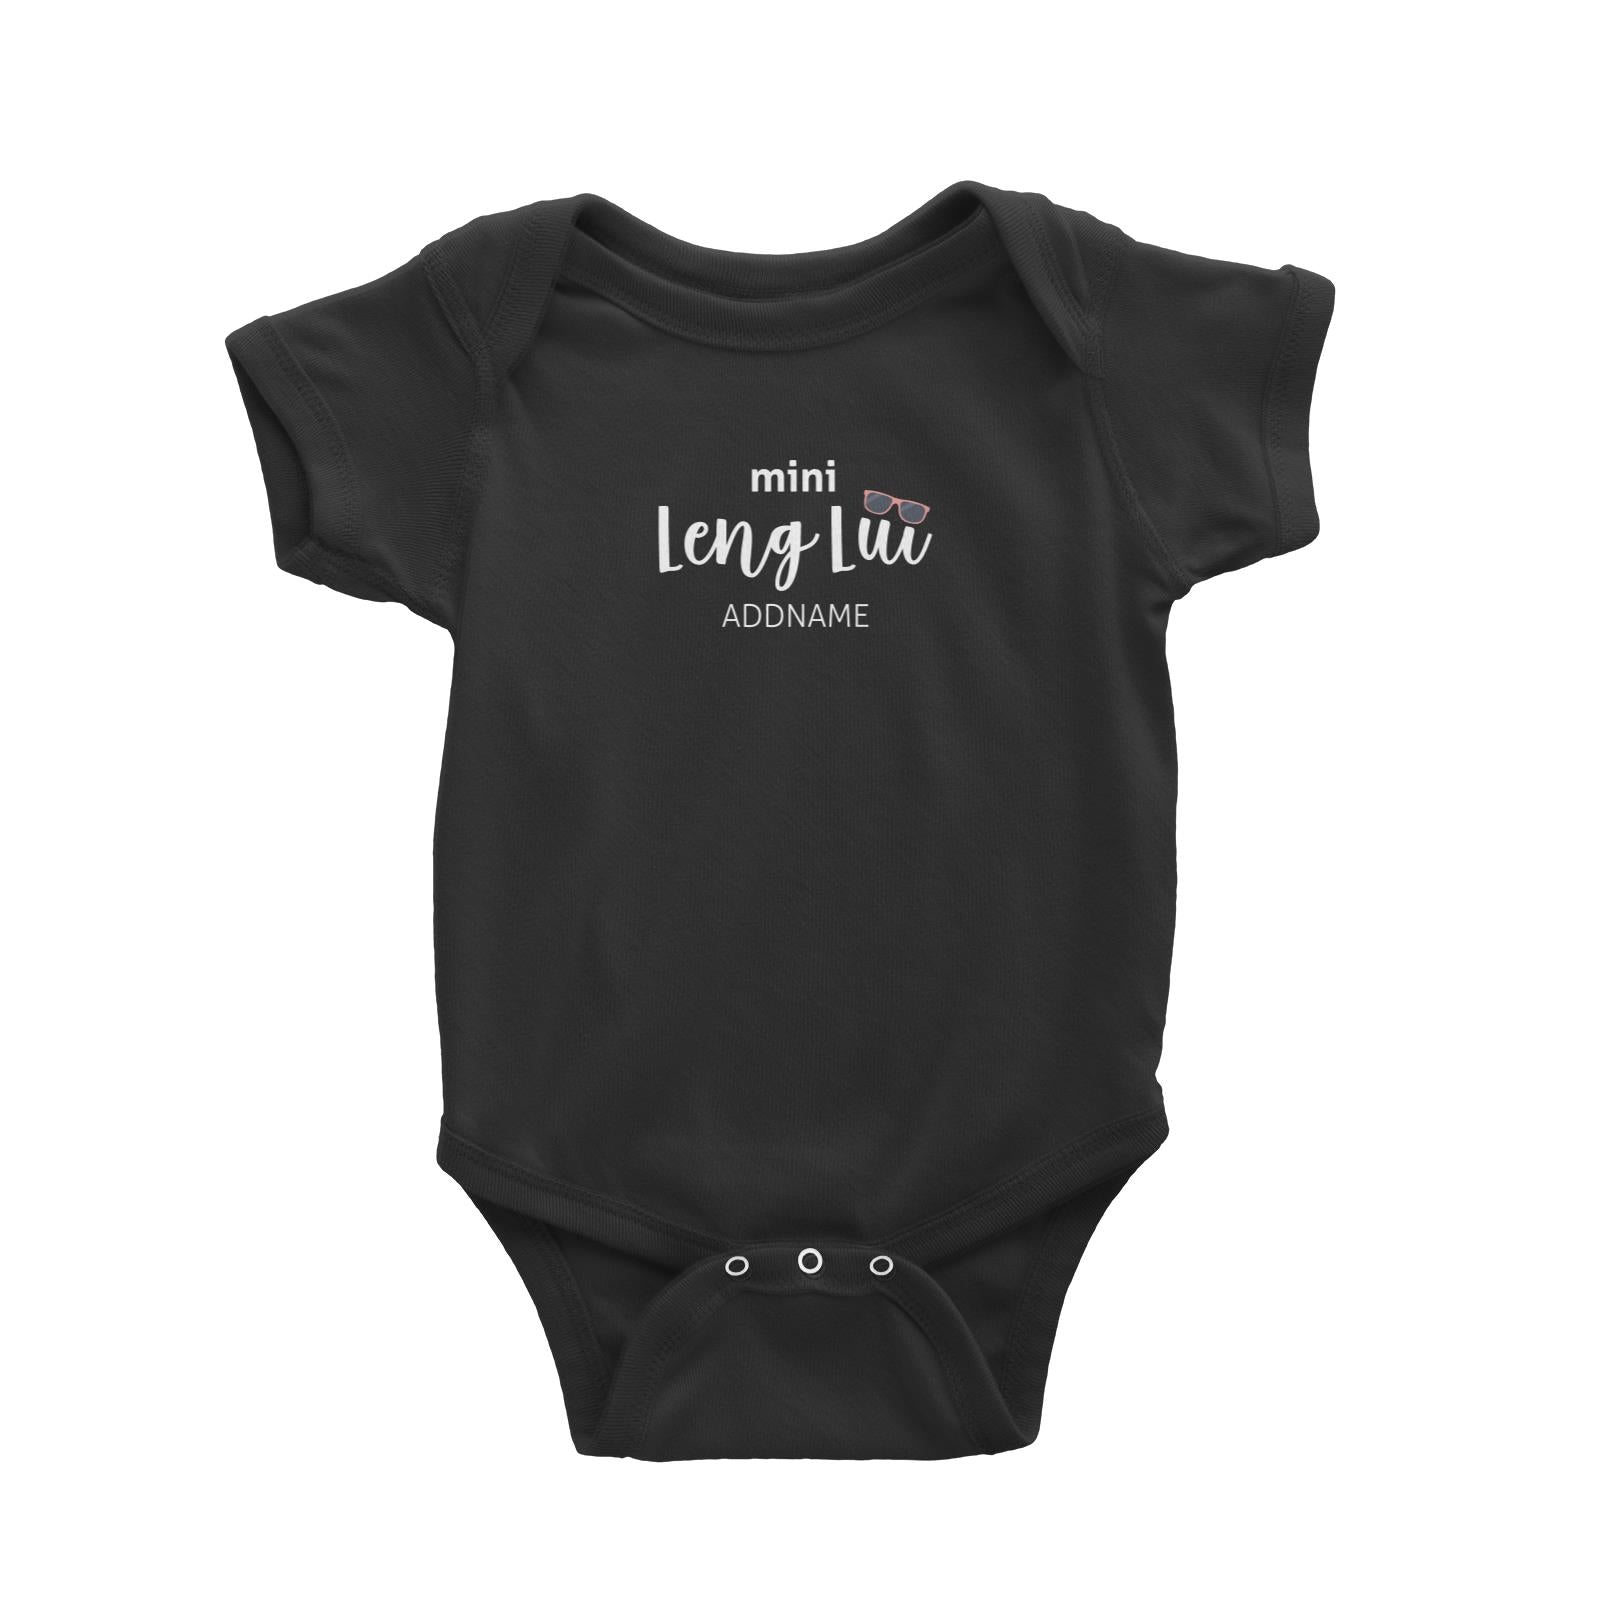 Mini Leng Lui with Sunnies Baby Romper